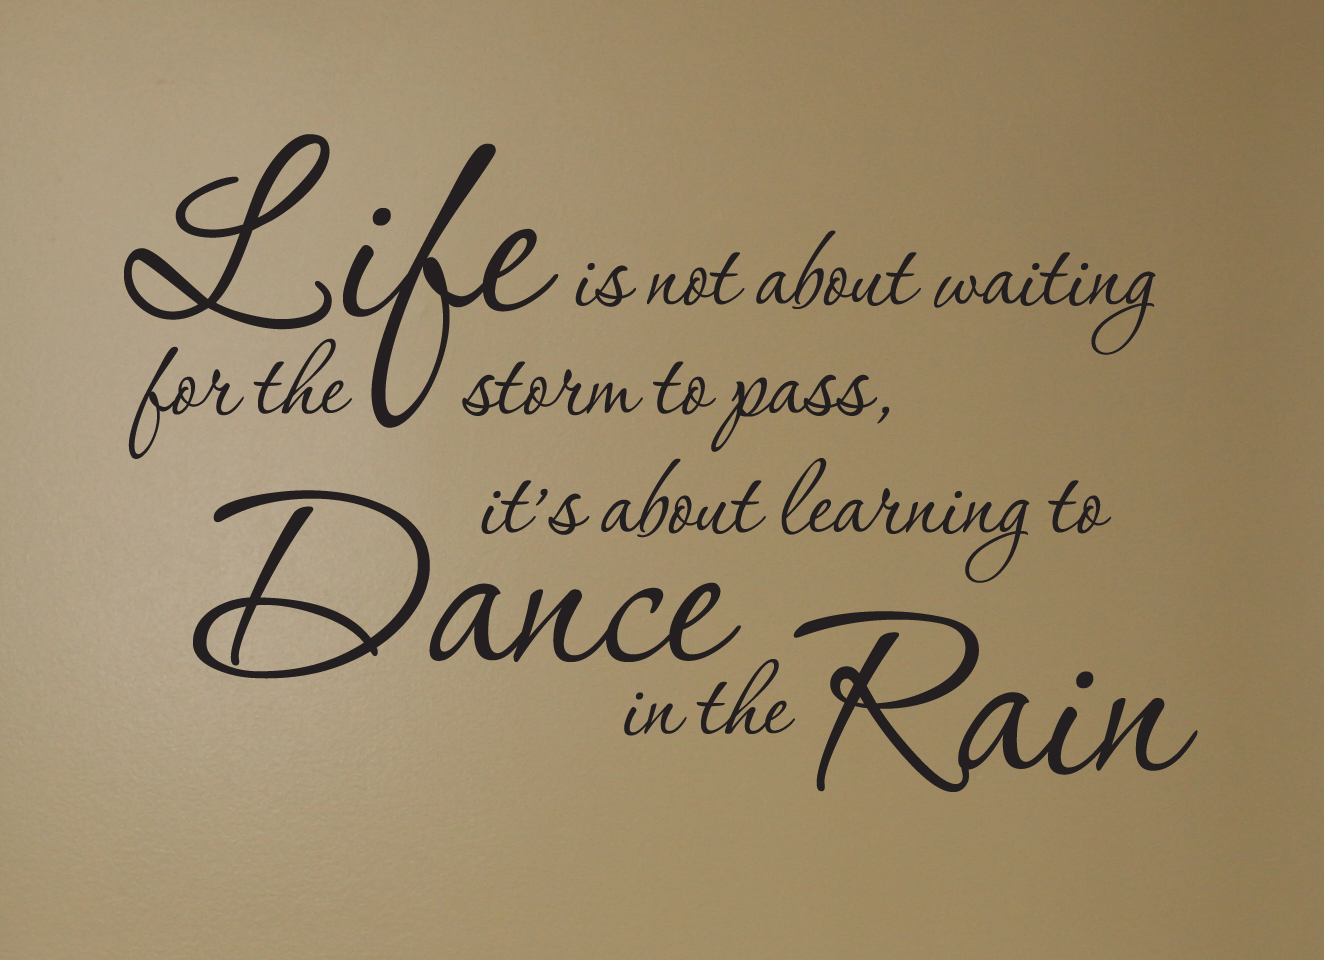 rain quotes and sayings - photo #9